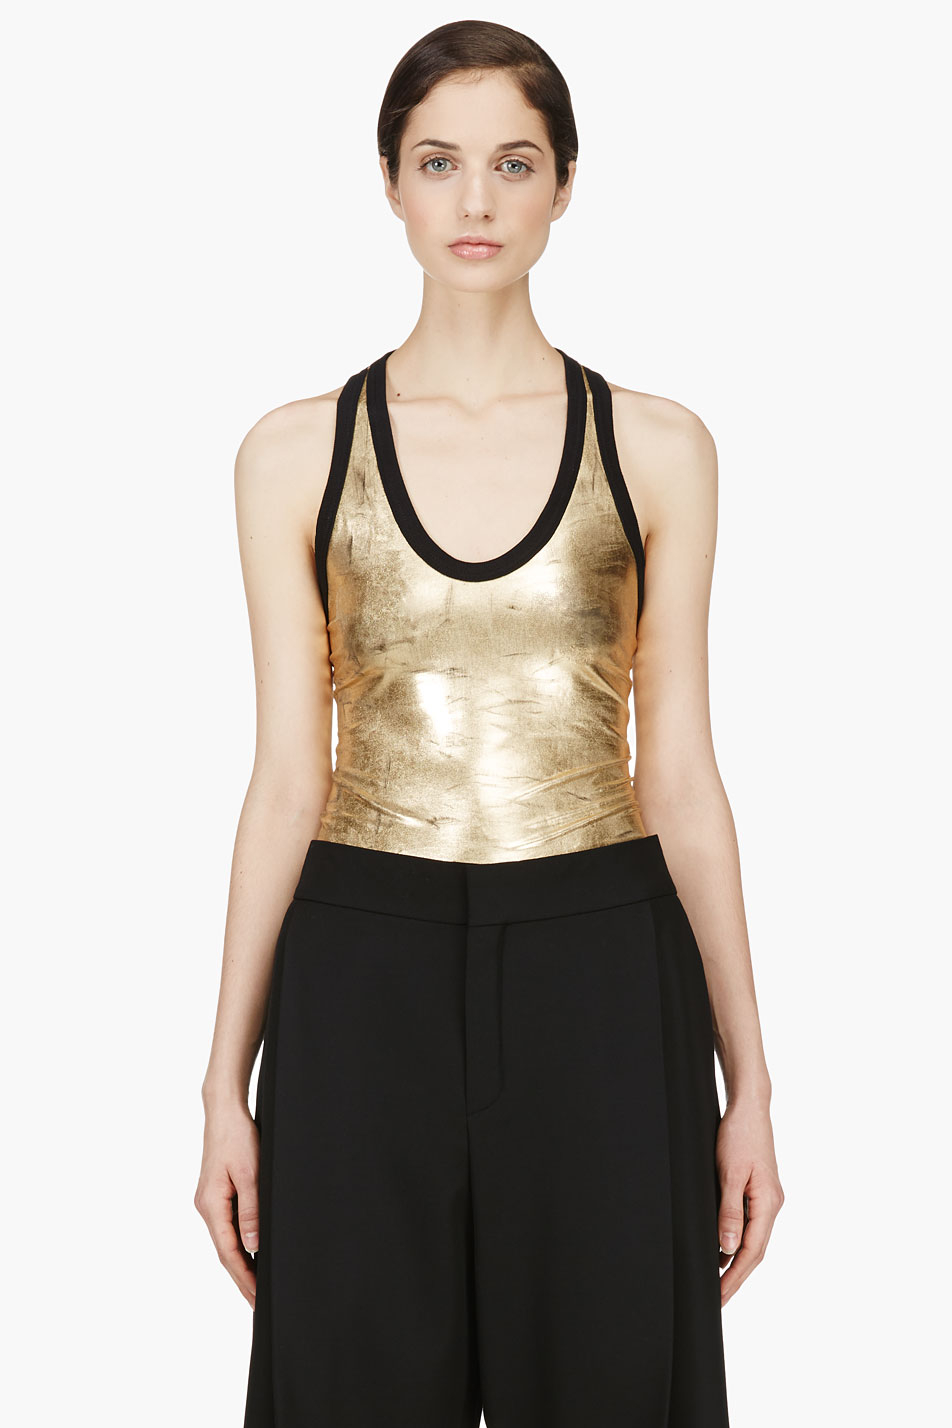 Our tank tops with trendy lace detail or velvet and satin fabrics are also the perfect addition to your going out outfit or dressier wardrobe. Our collection of classic plus size tank tops .